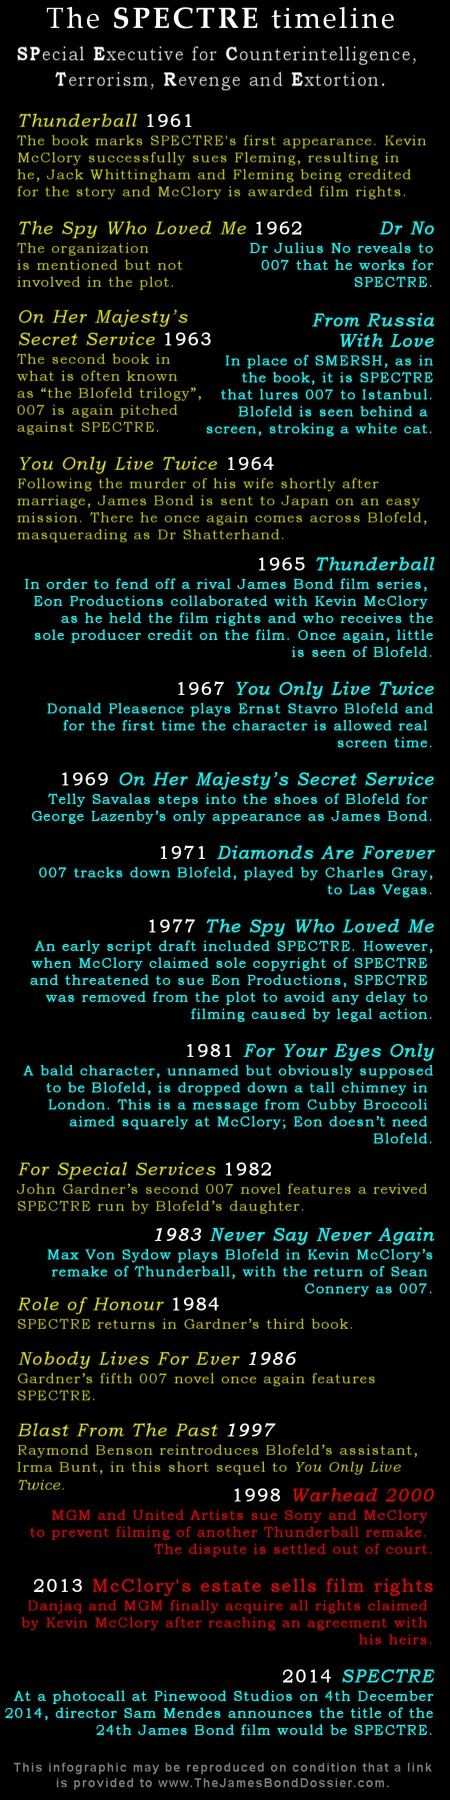 The SPECTRE Timeline [Infographic] - The James Bond Dossier